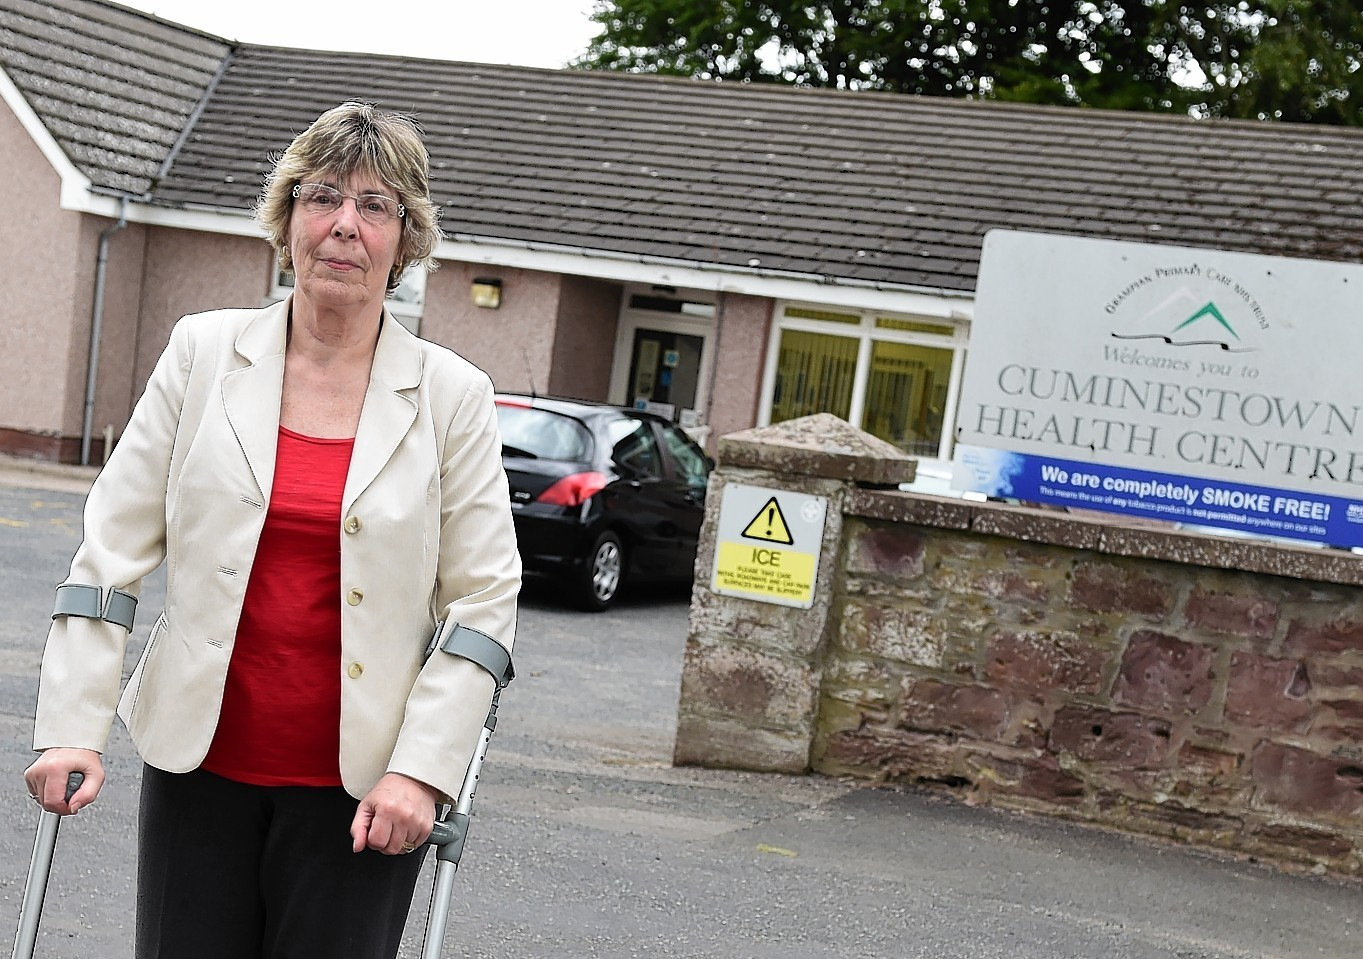 Susan Neal outside Cuminestown Health Centre. Picture by Kami Thomson